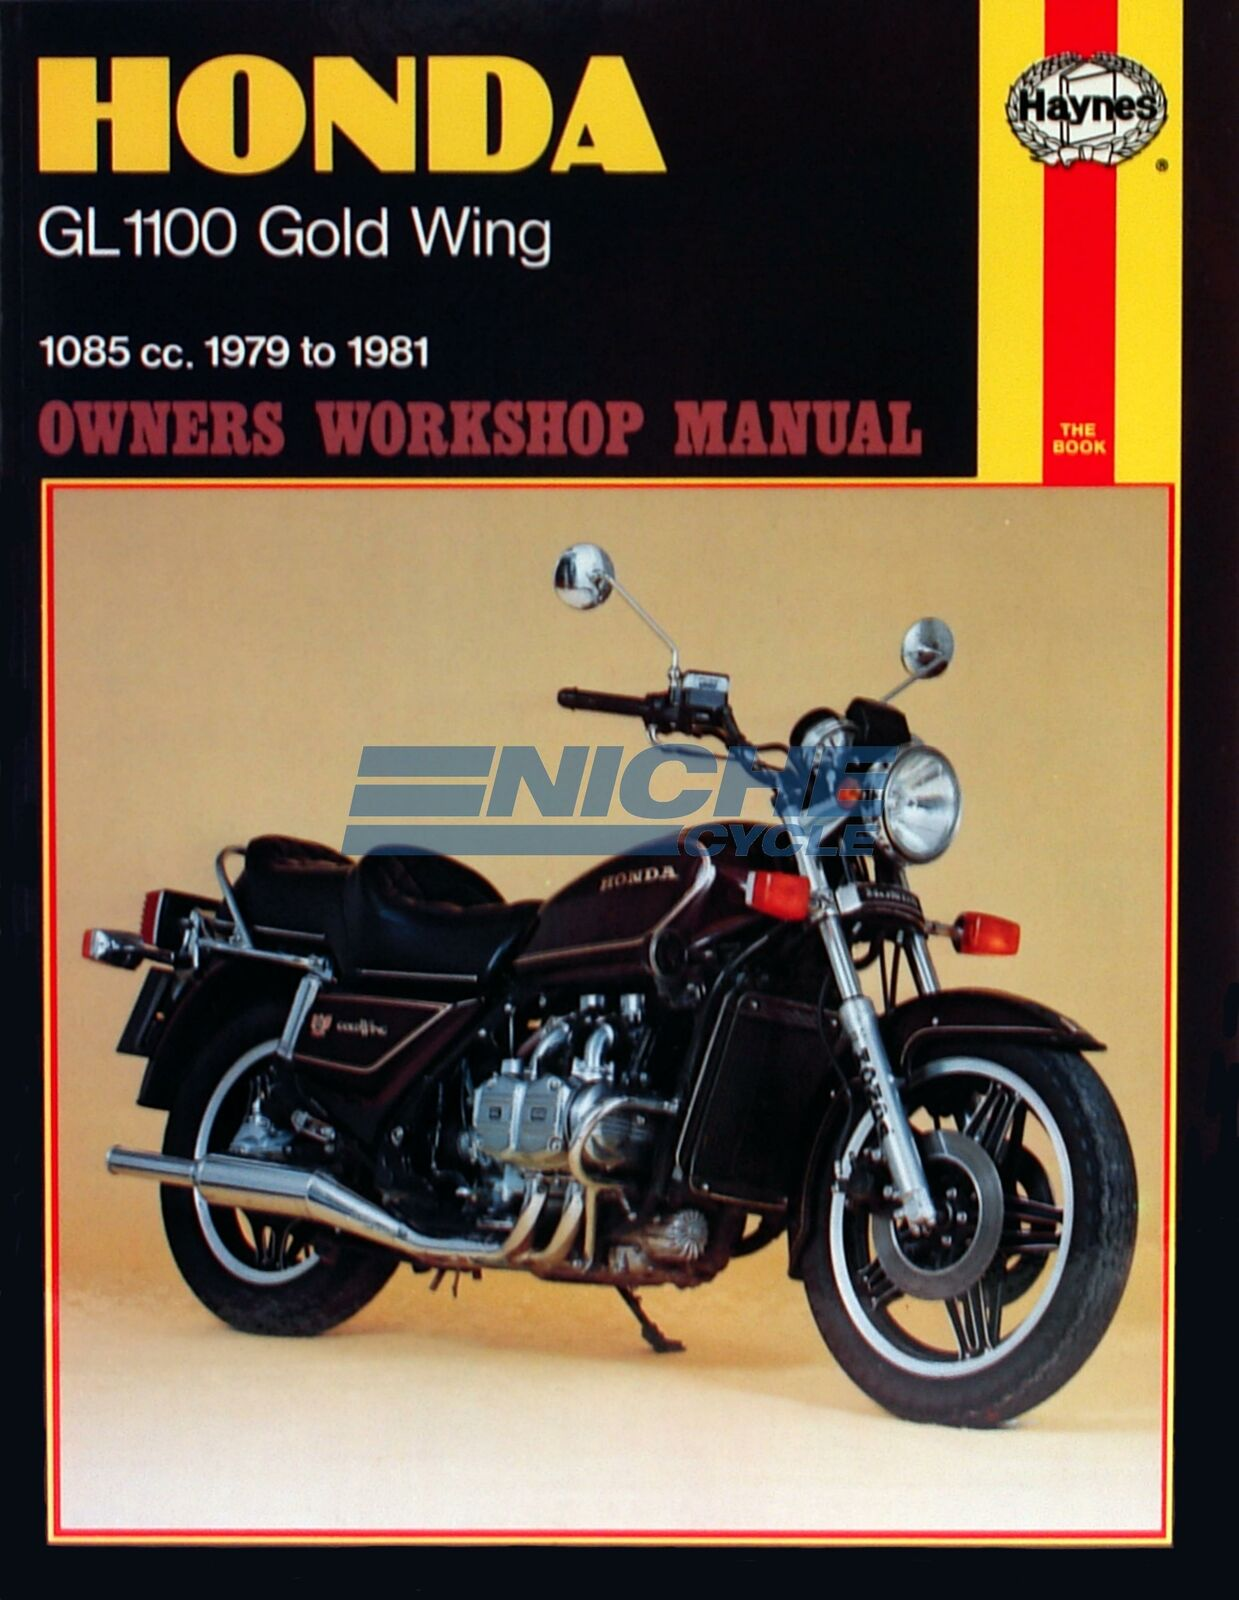 Honda Gold Wing GL1100 79-81 Haynes Service Repair Manual Book M669 1 of  1Only 4 available ...